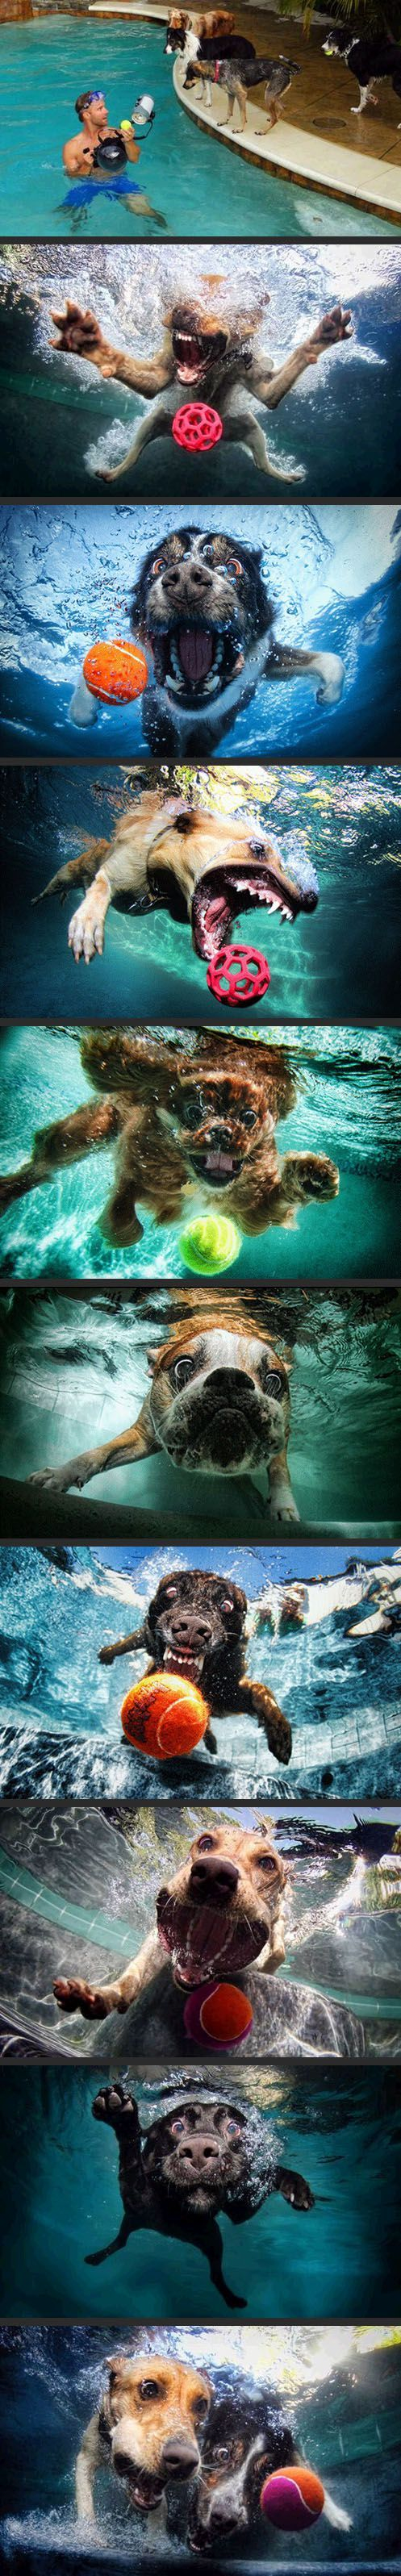 Dogs ball underwater camera = Awesome